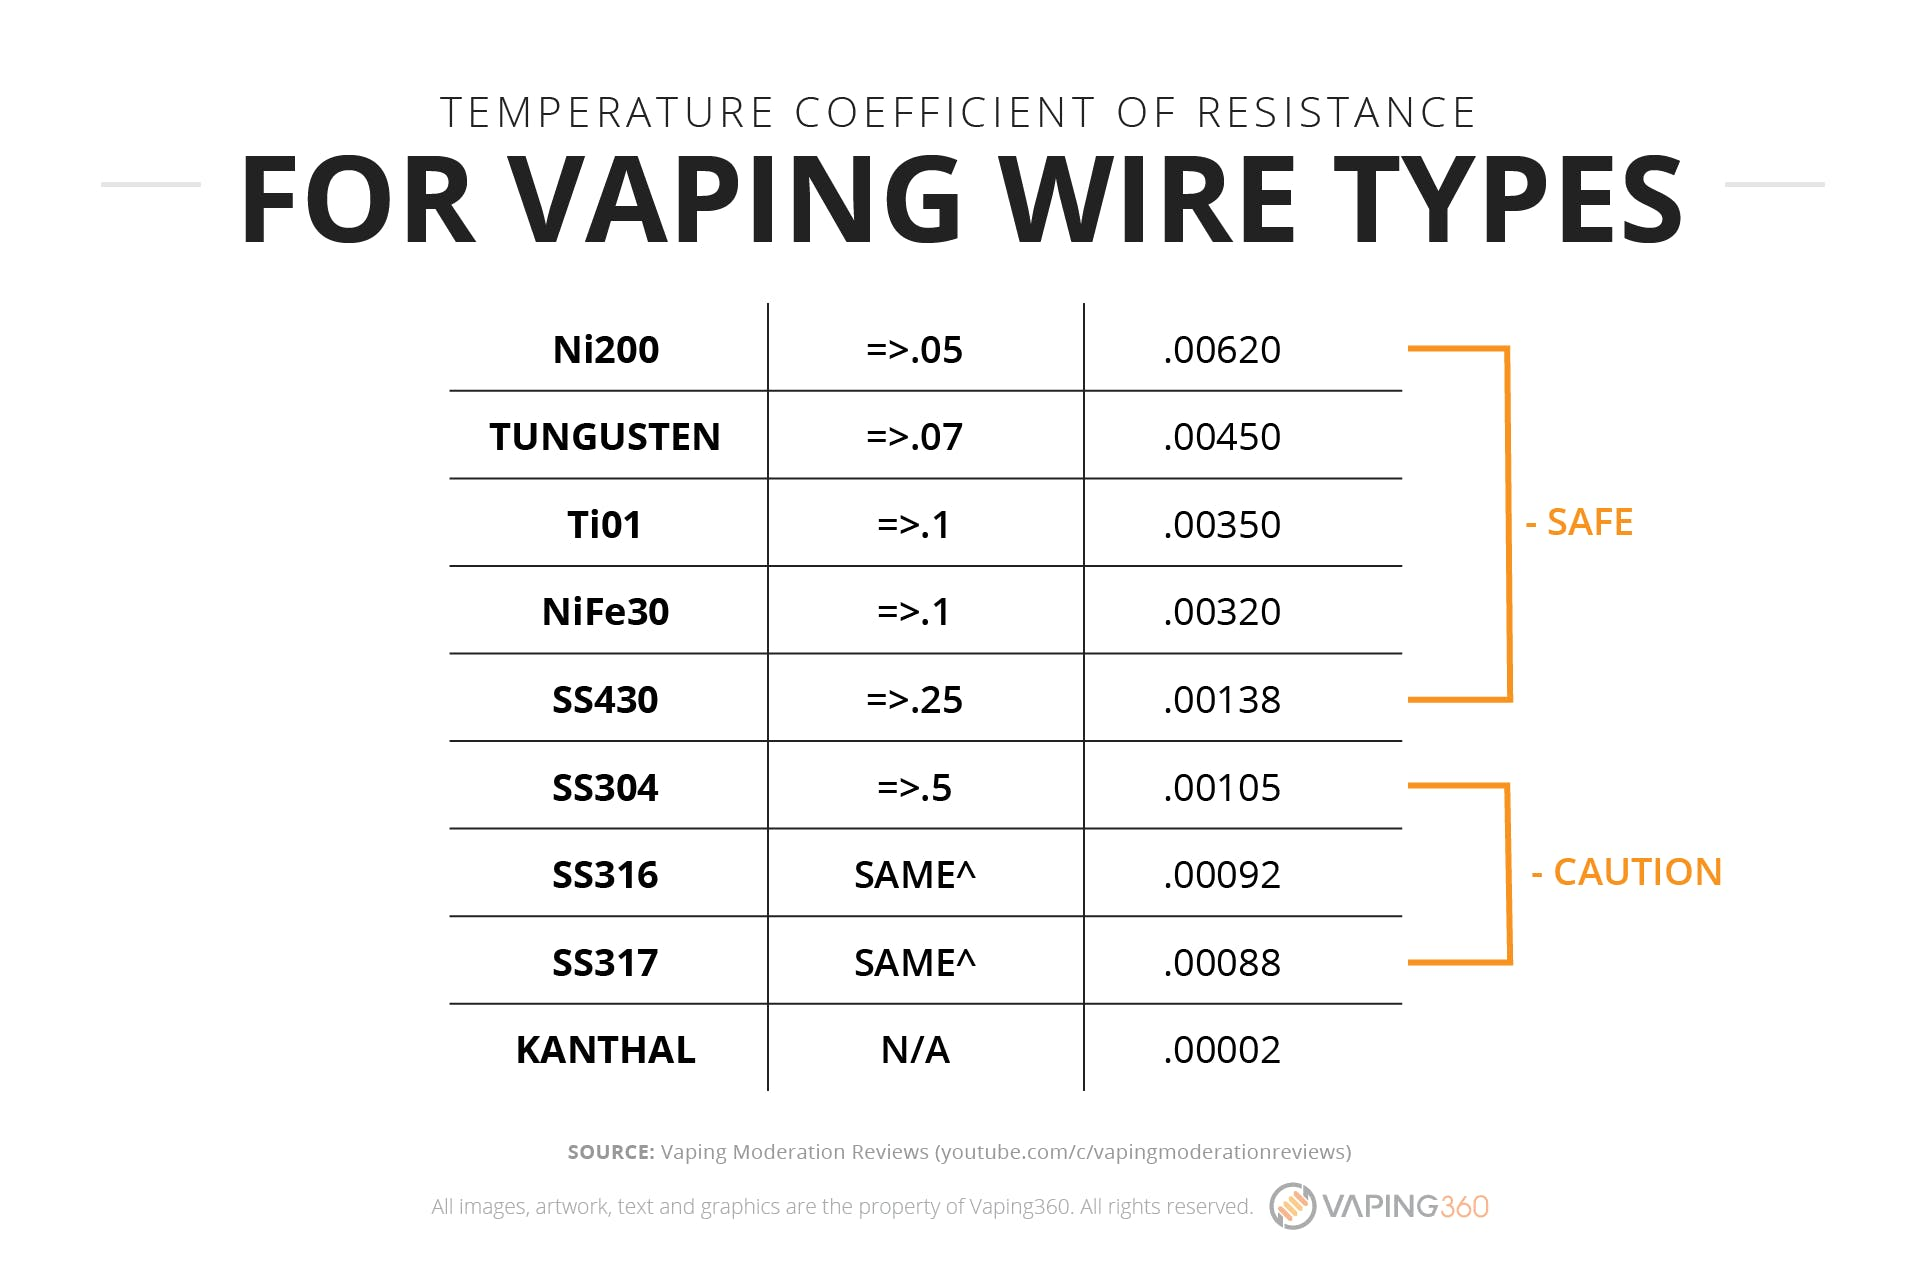 Temperature Coefficient Of Resistance For Vaping Wire Types-Infographic